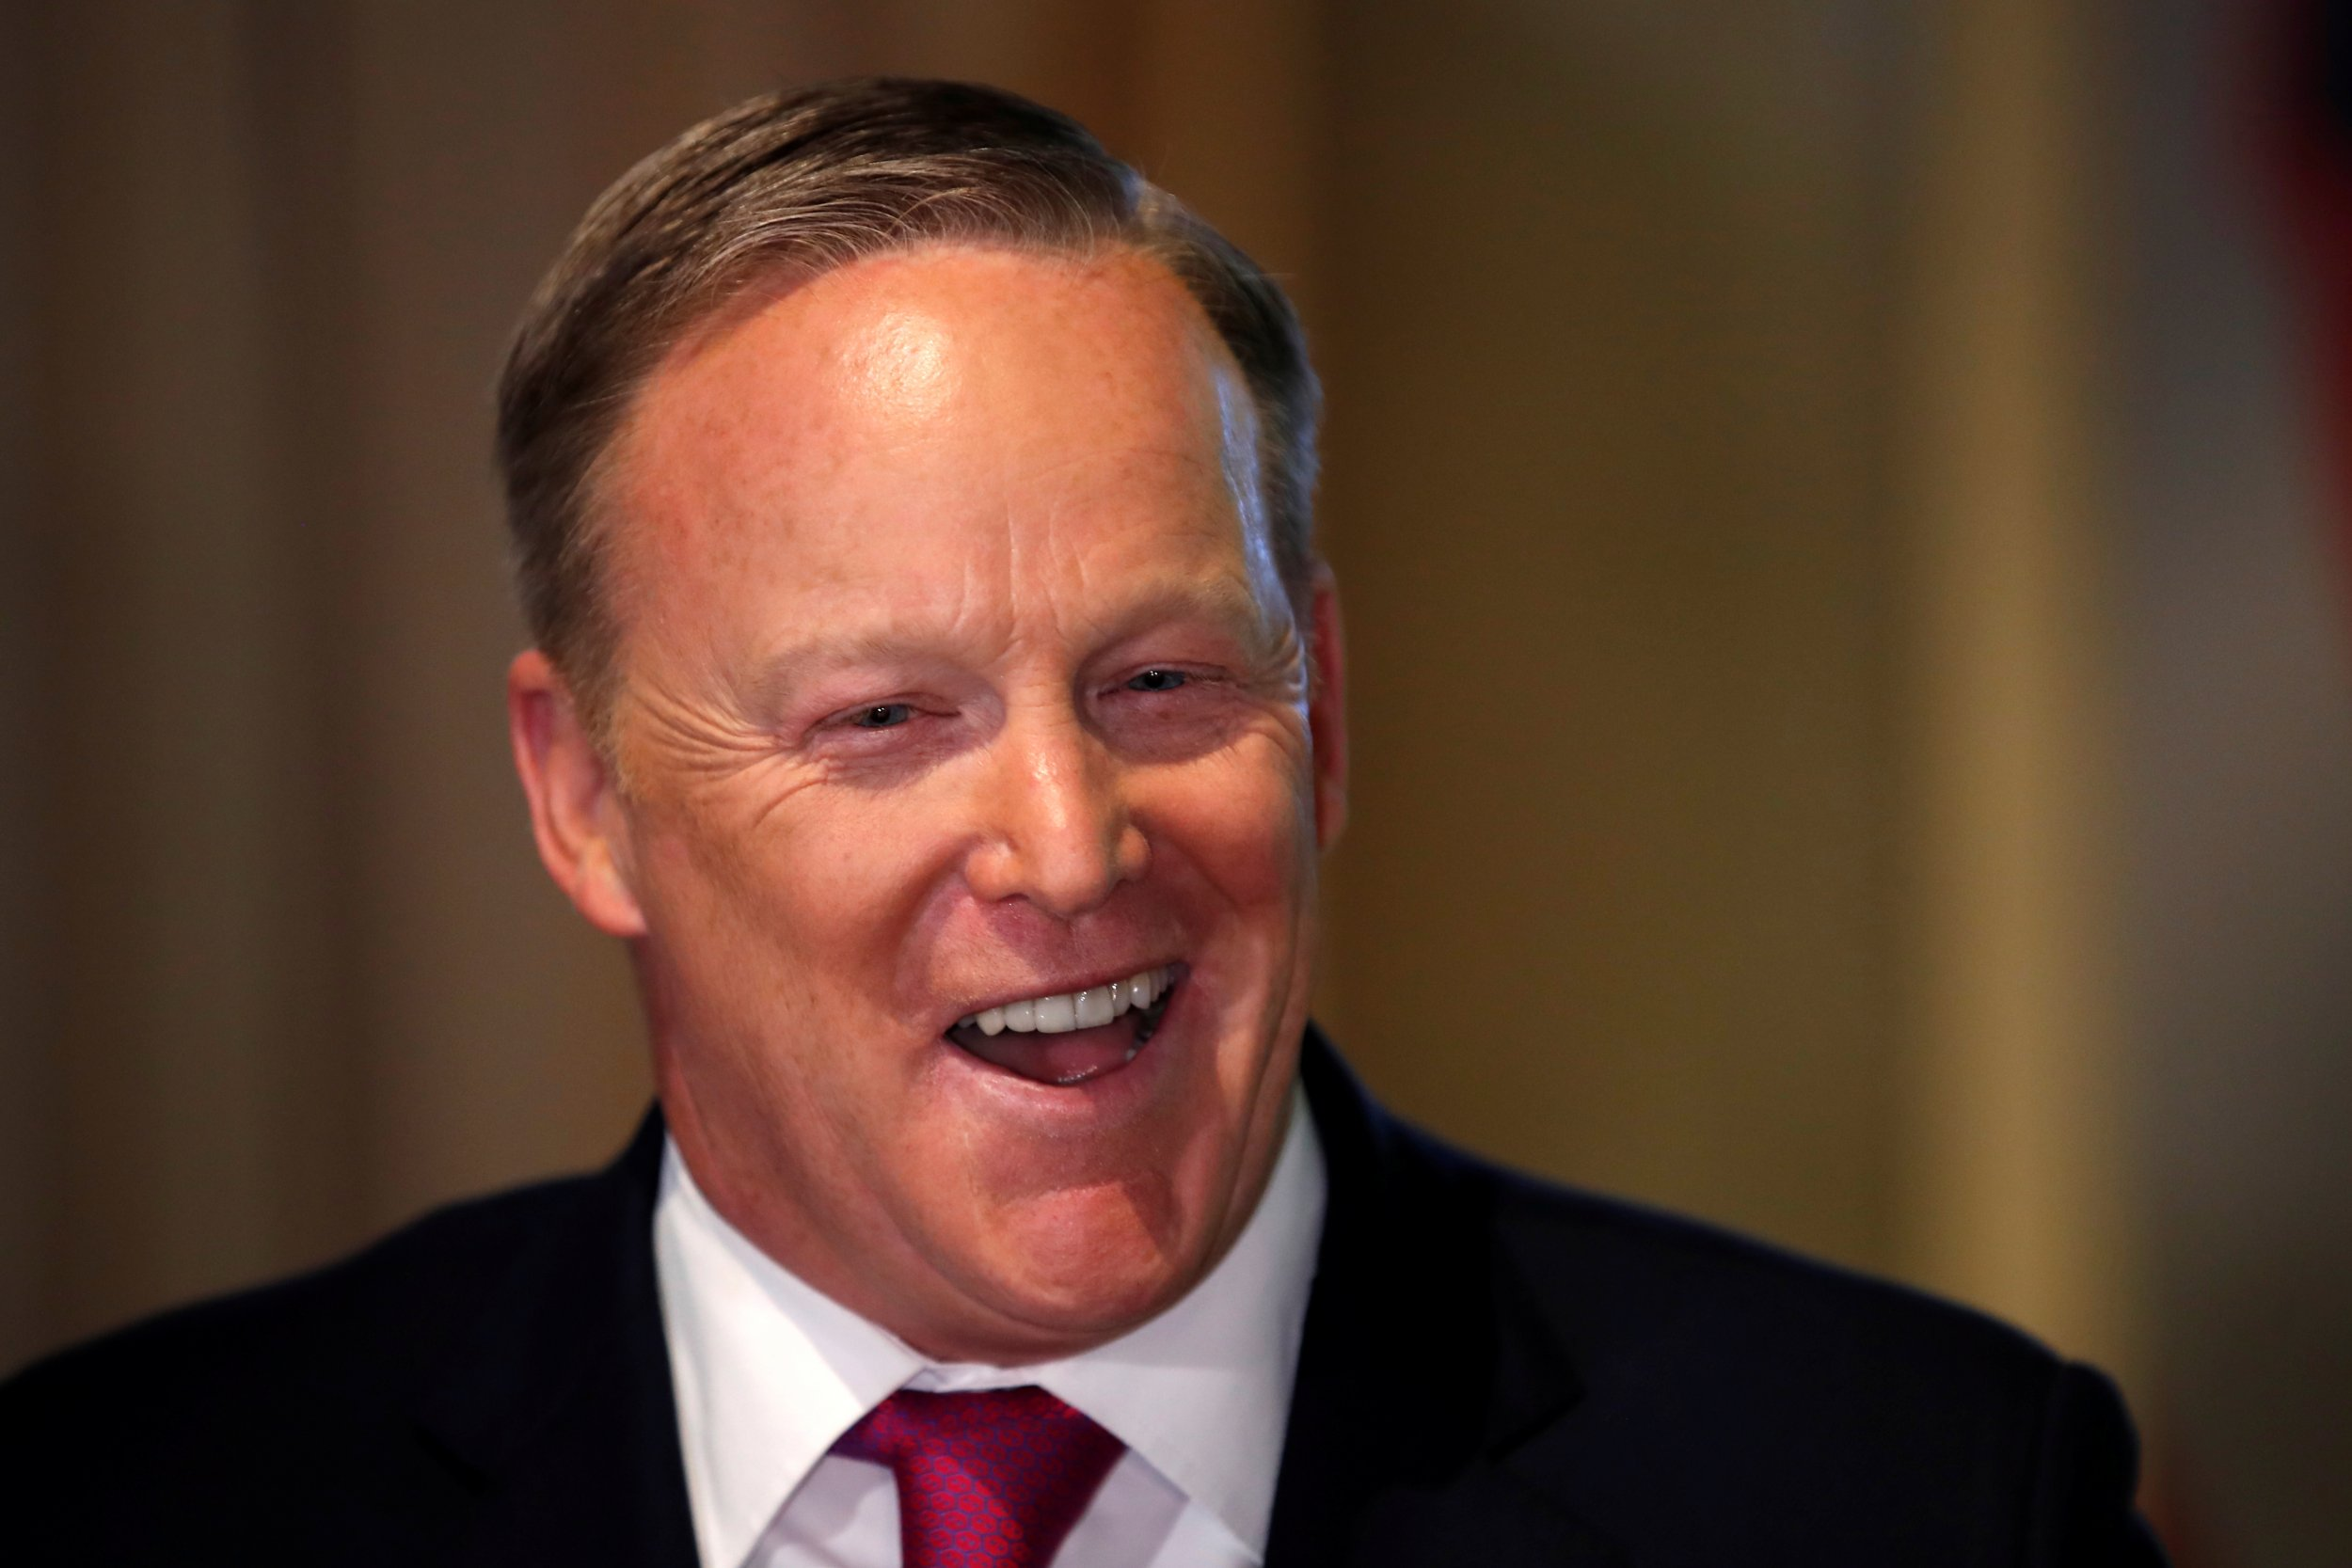 2018-04-25T165507Z_1781855614_RC12A94DC810_RTRMADP_3_USA-TRUMP-SPICER-BOOK